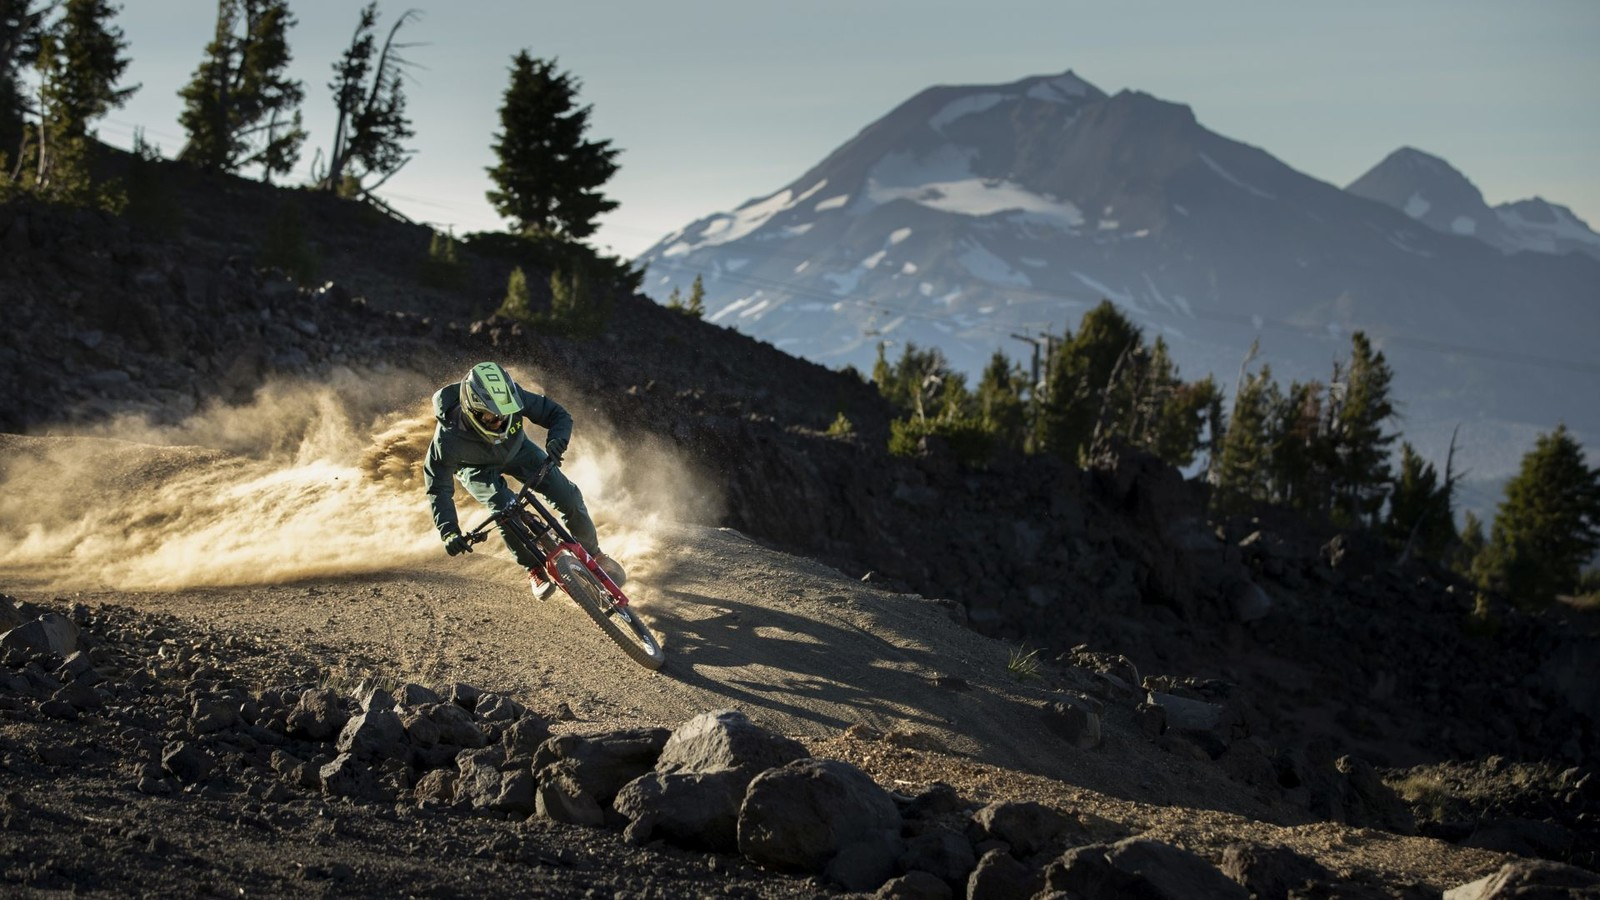 Fox Racing Fall/Winter 2020 Collection Highlights